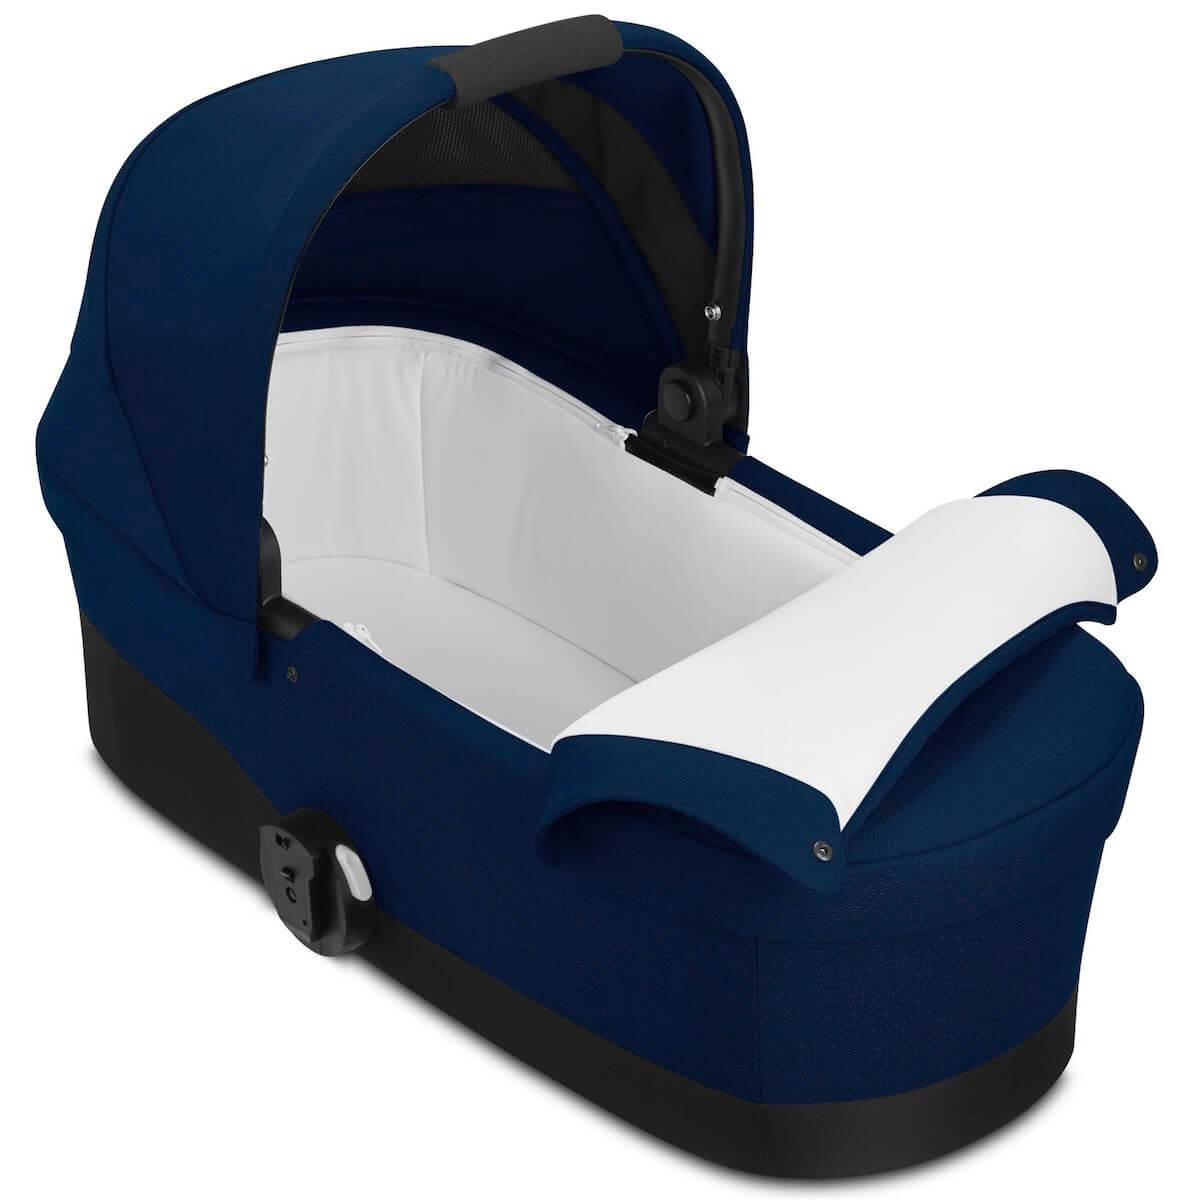 Nacelle S Cybex River blue-turquoise